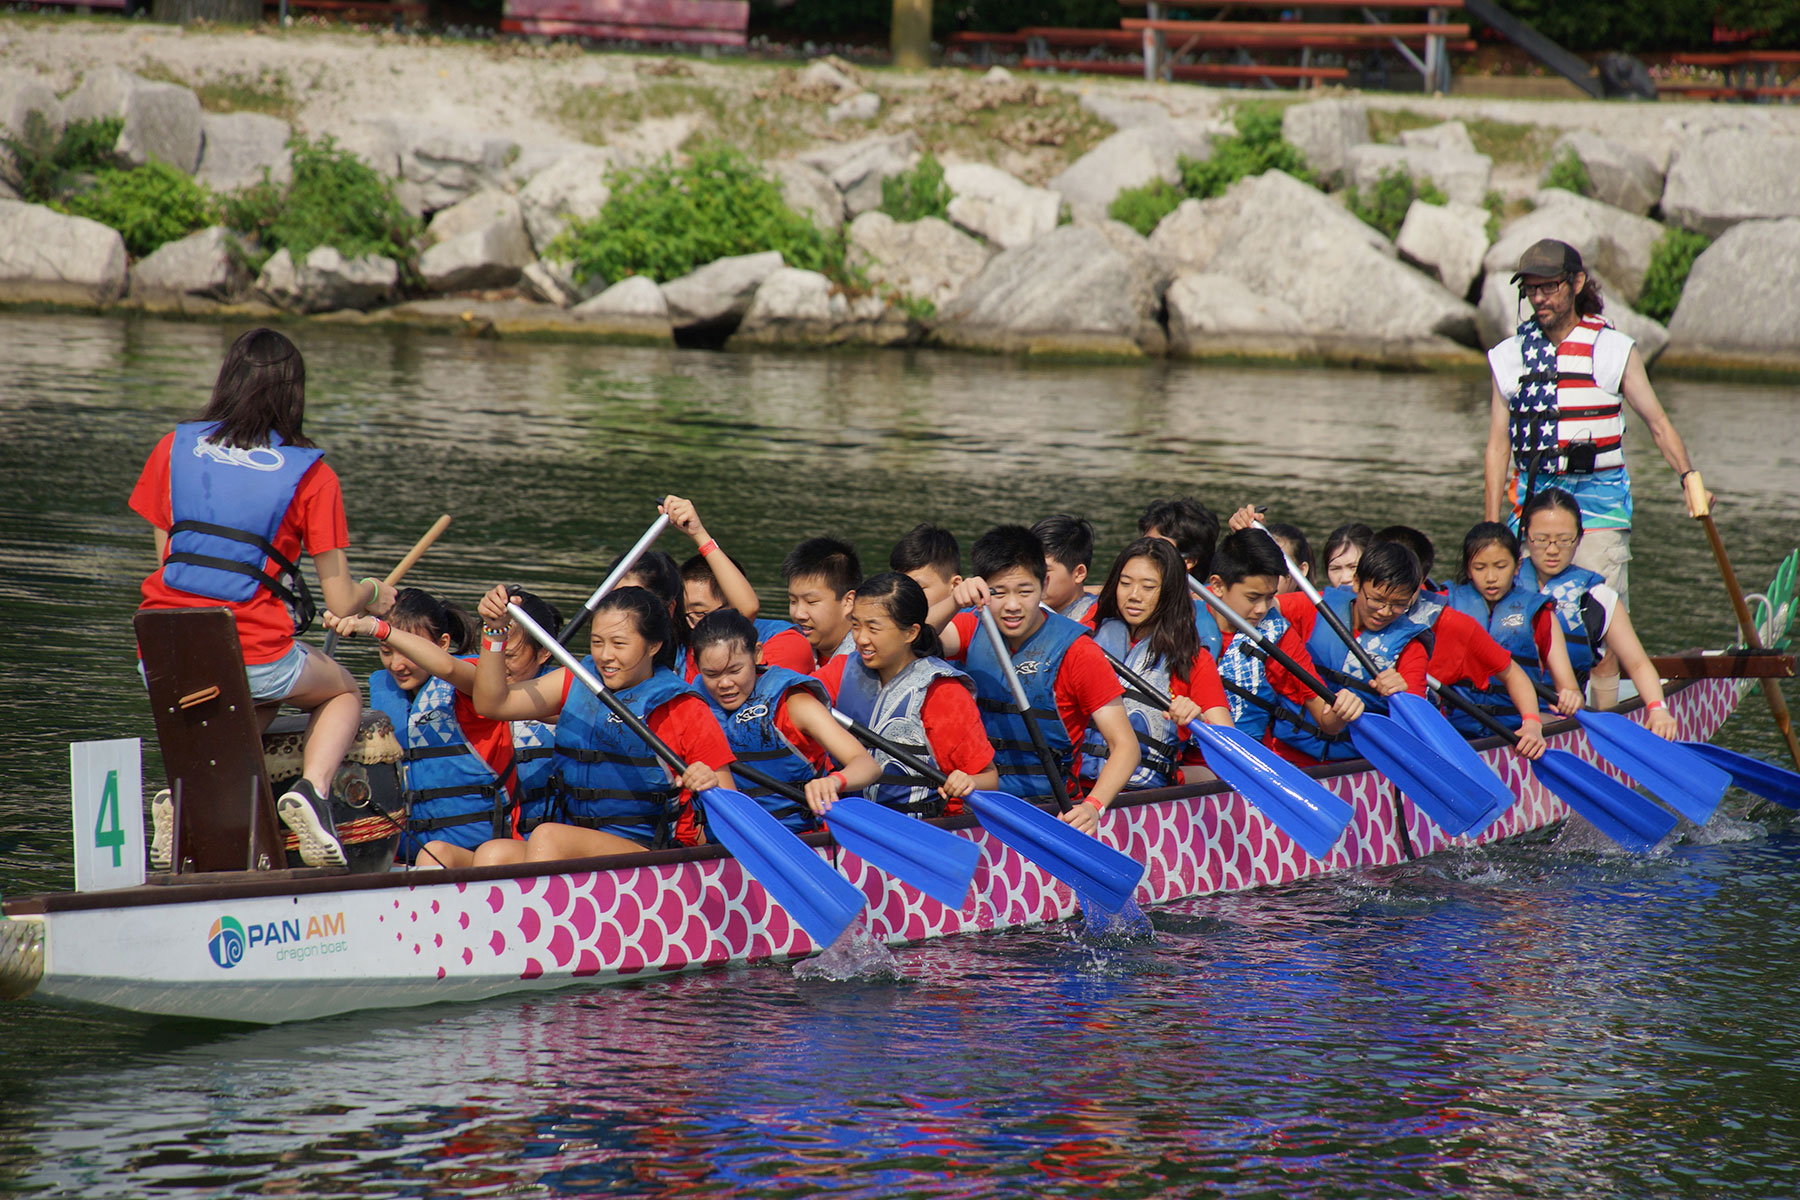 081118_dragonboat_528